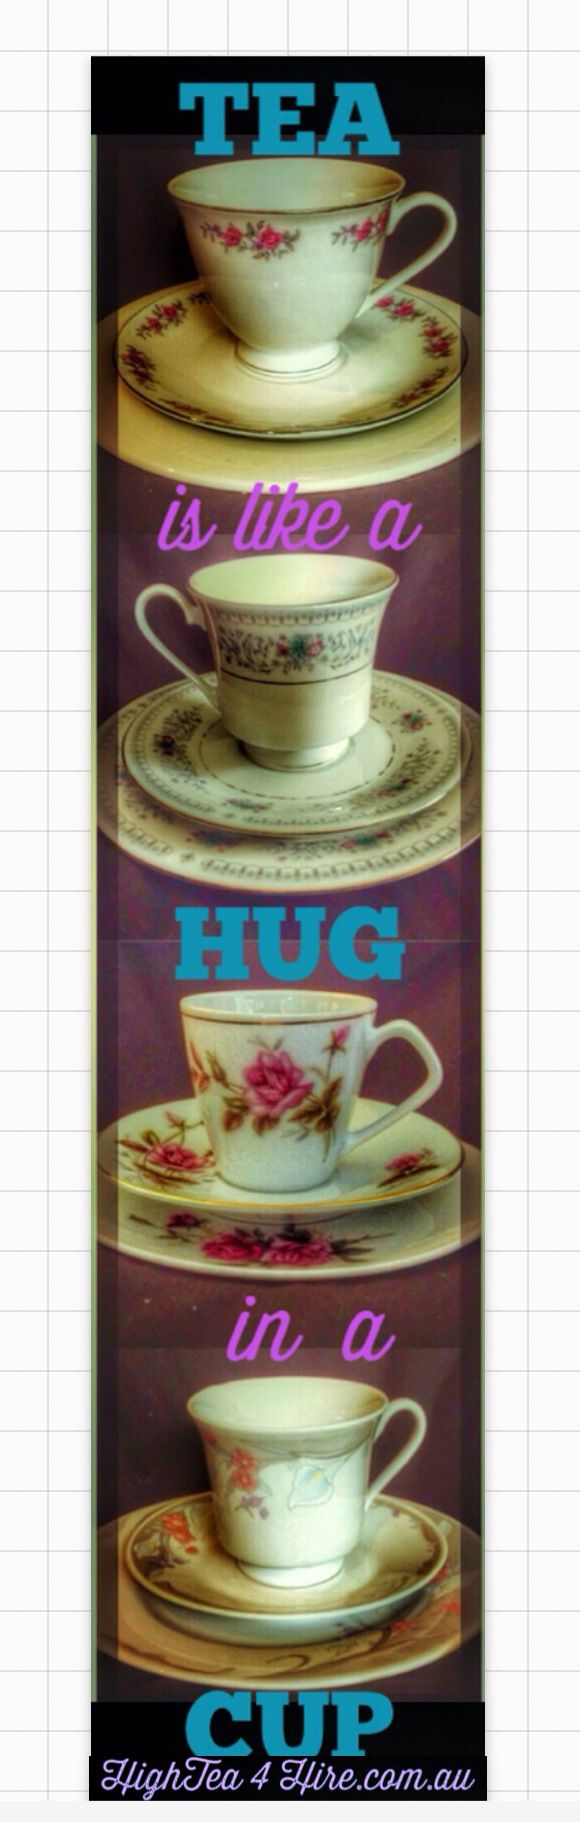 Maybe this is why I drink more tea when I miss my family.  Drink tea.  HighTea4Hire.com.au